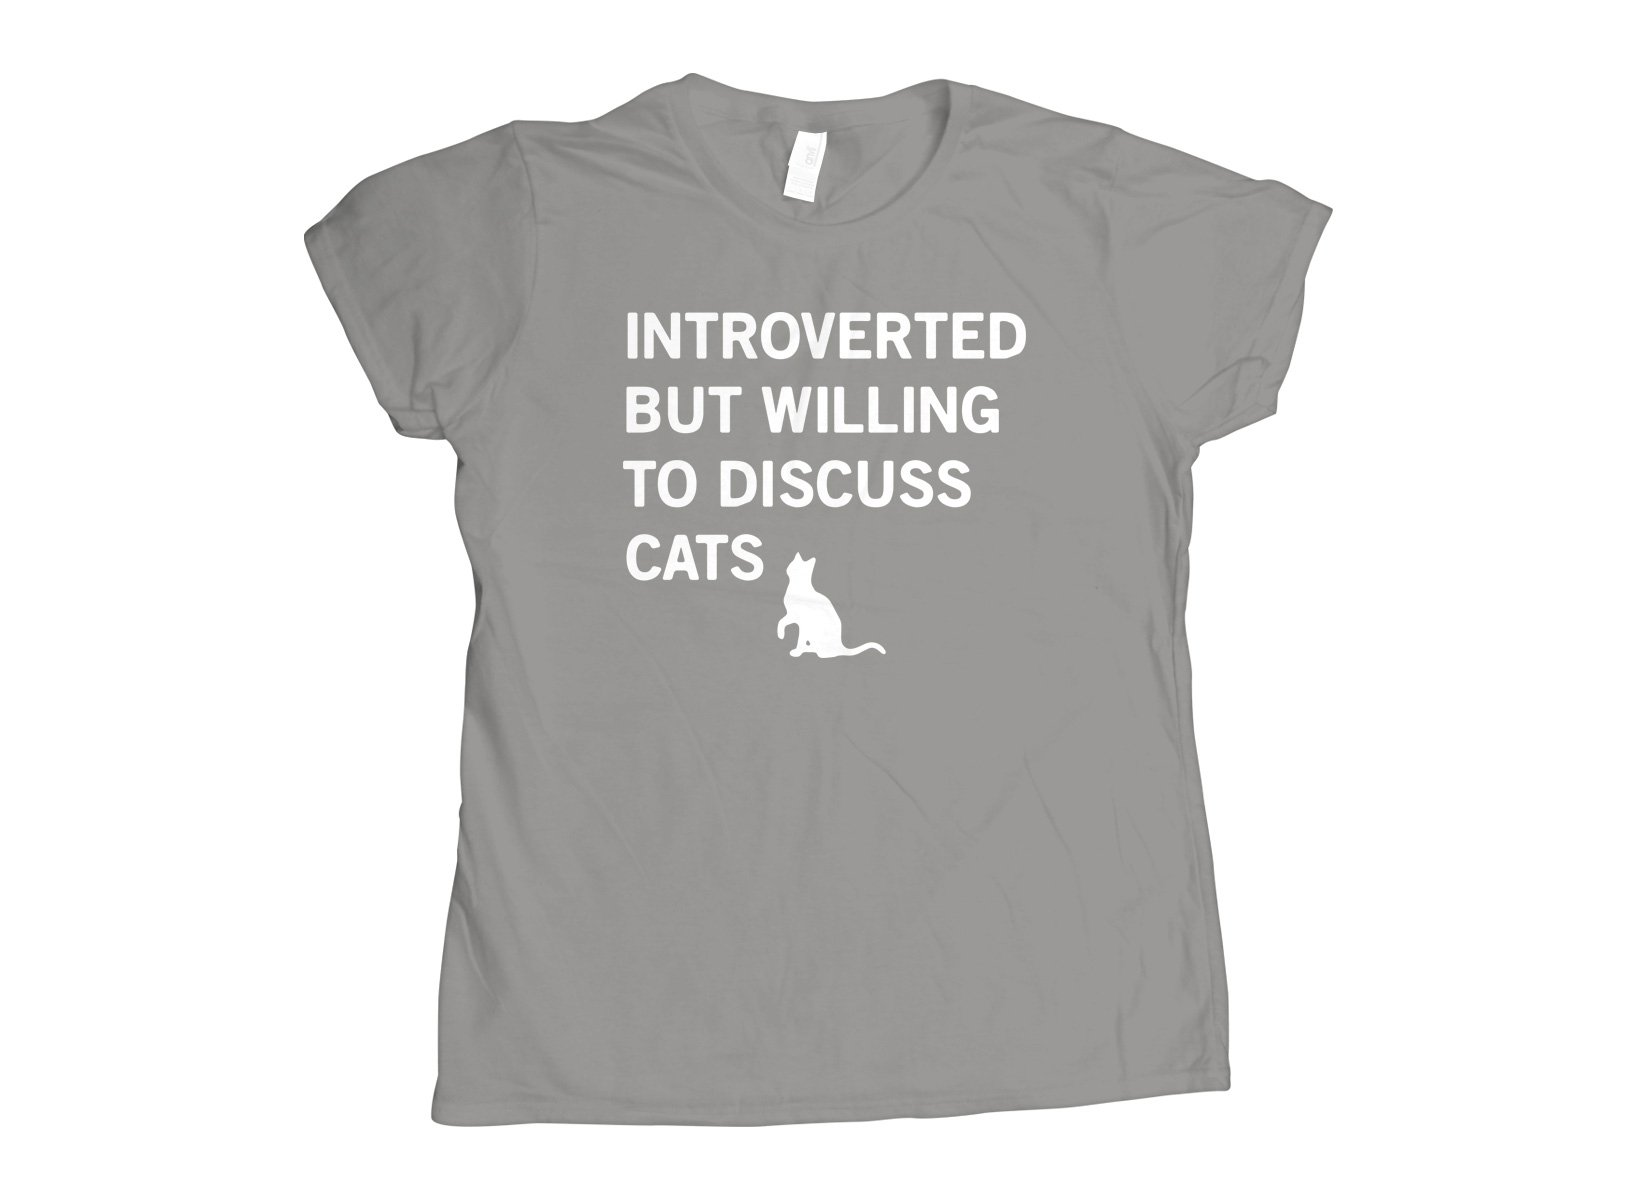 Introverted But Willing To Discuss Cats on Womens T-Shirt